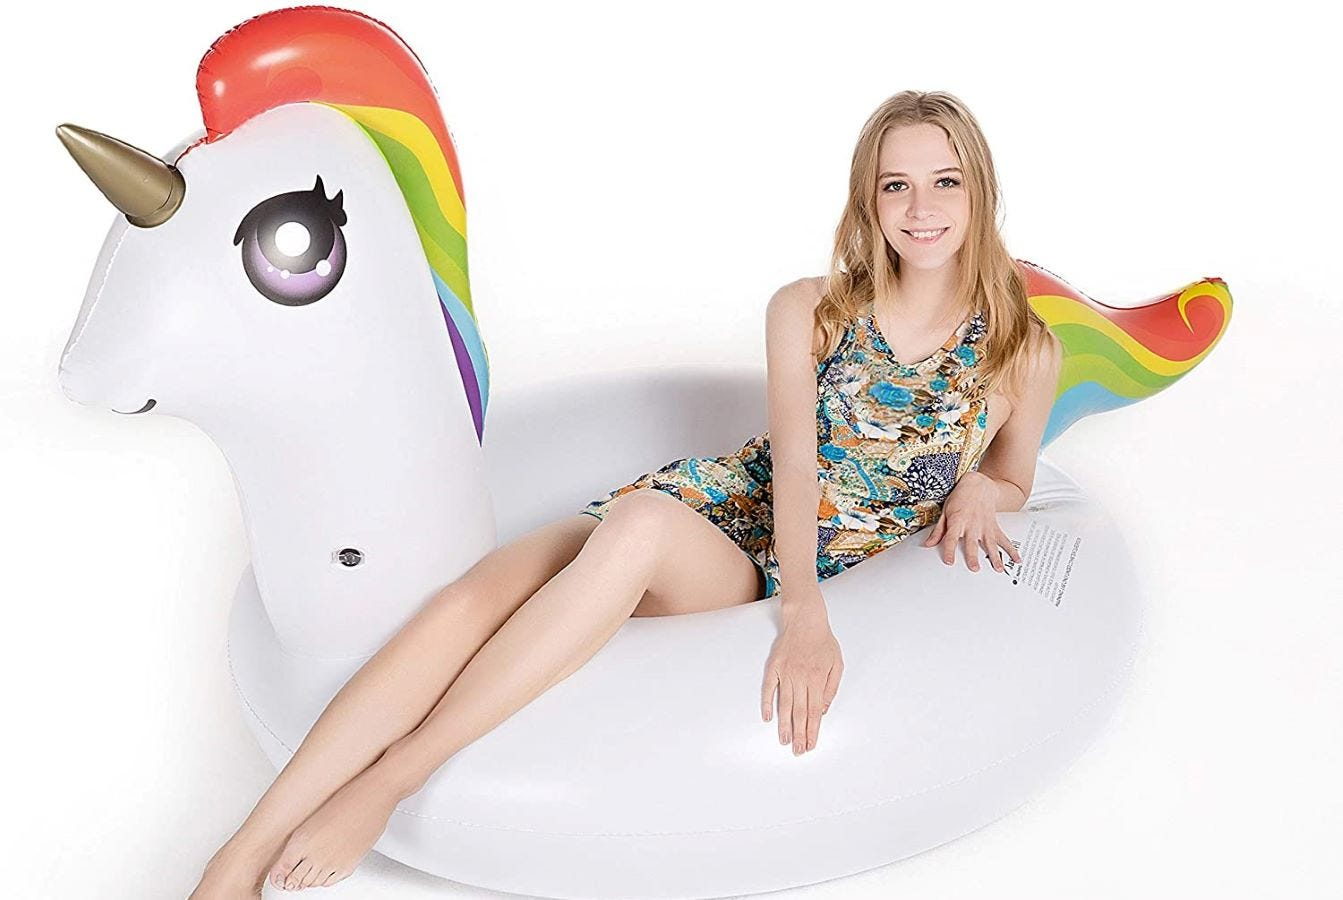 A young girl sitting in the Jasonwell Unicorn Pool Float